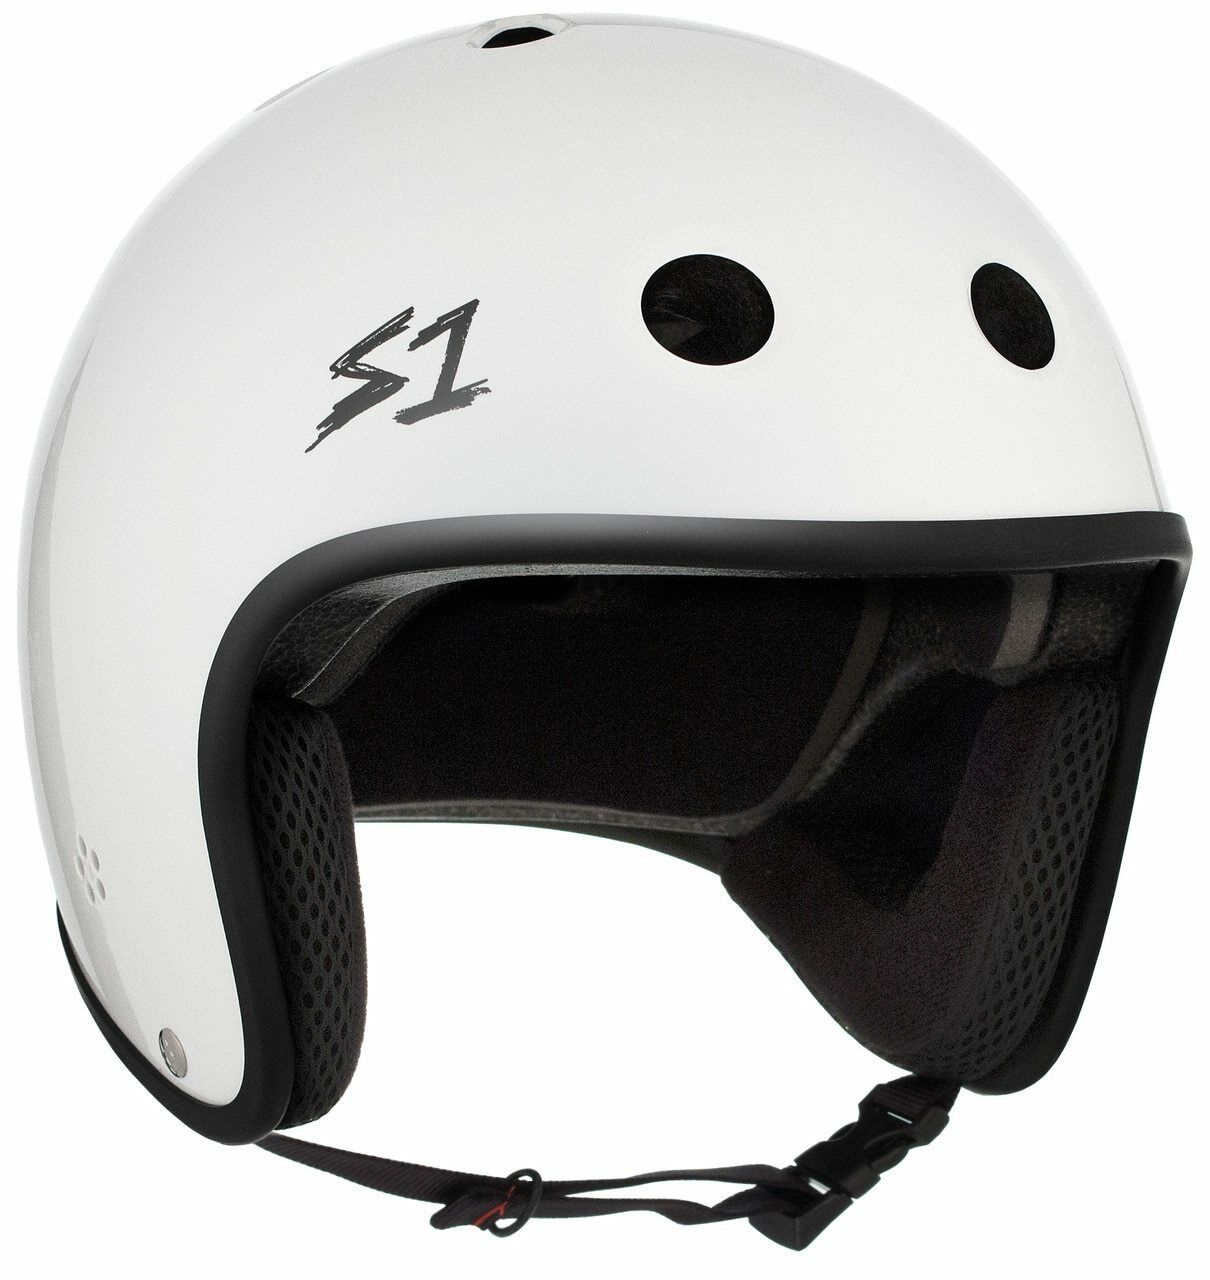 S1 Retro  Lifer Helmet - White Gloss  high-quality merchandise and convenient, honest service